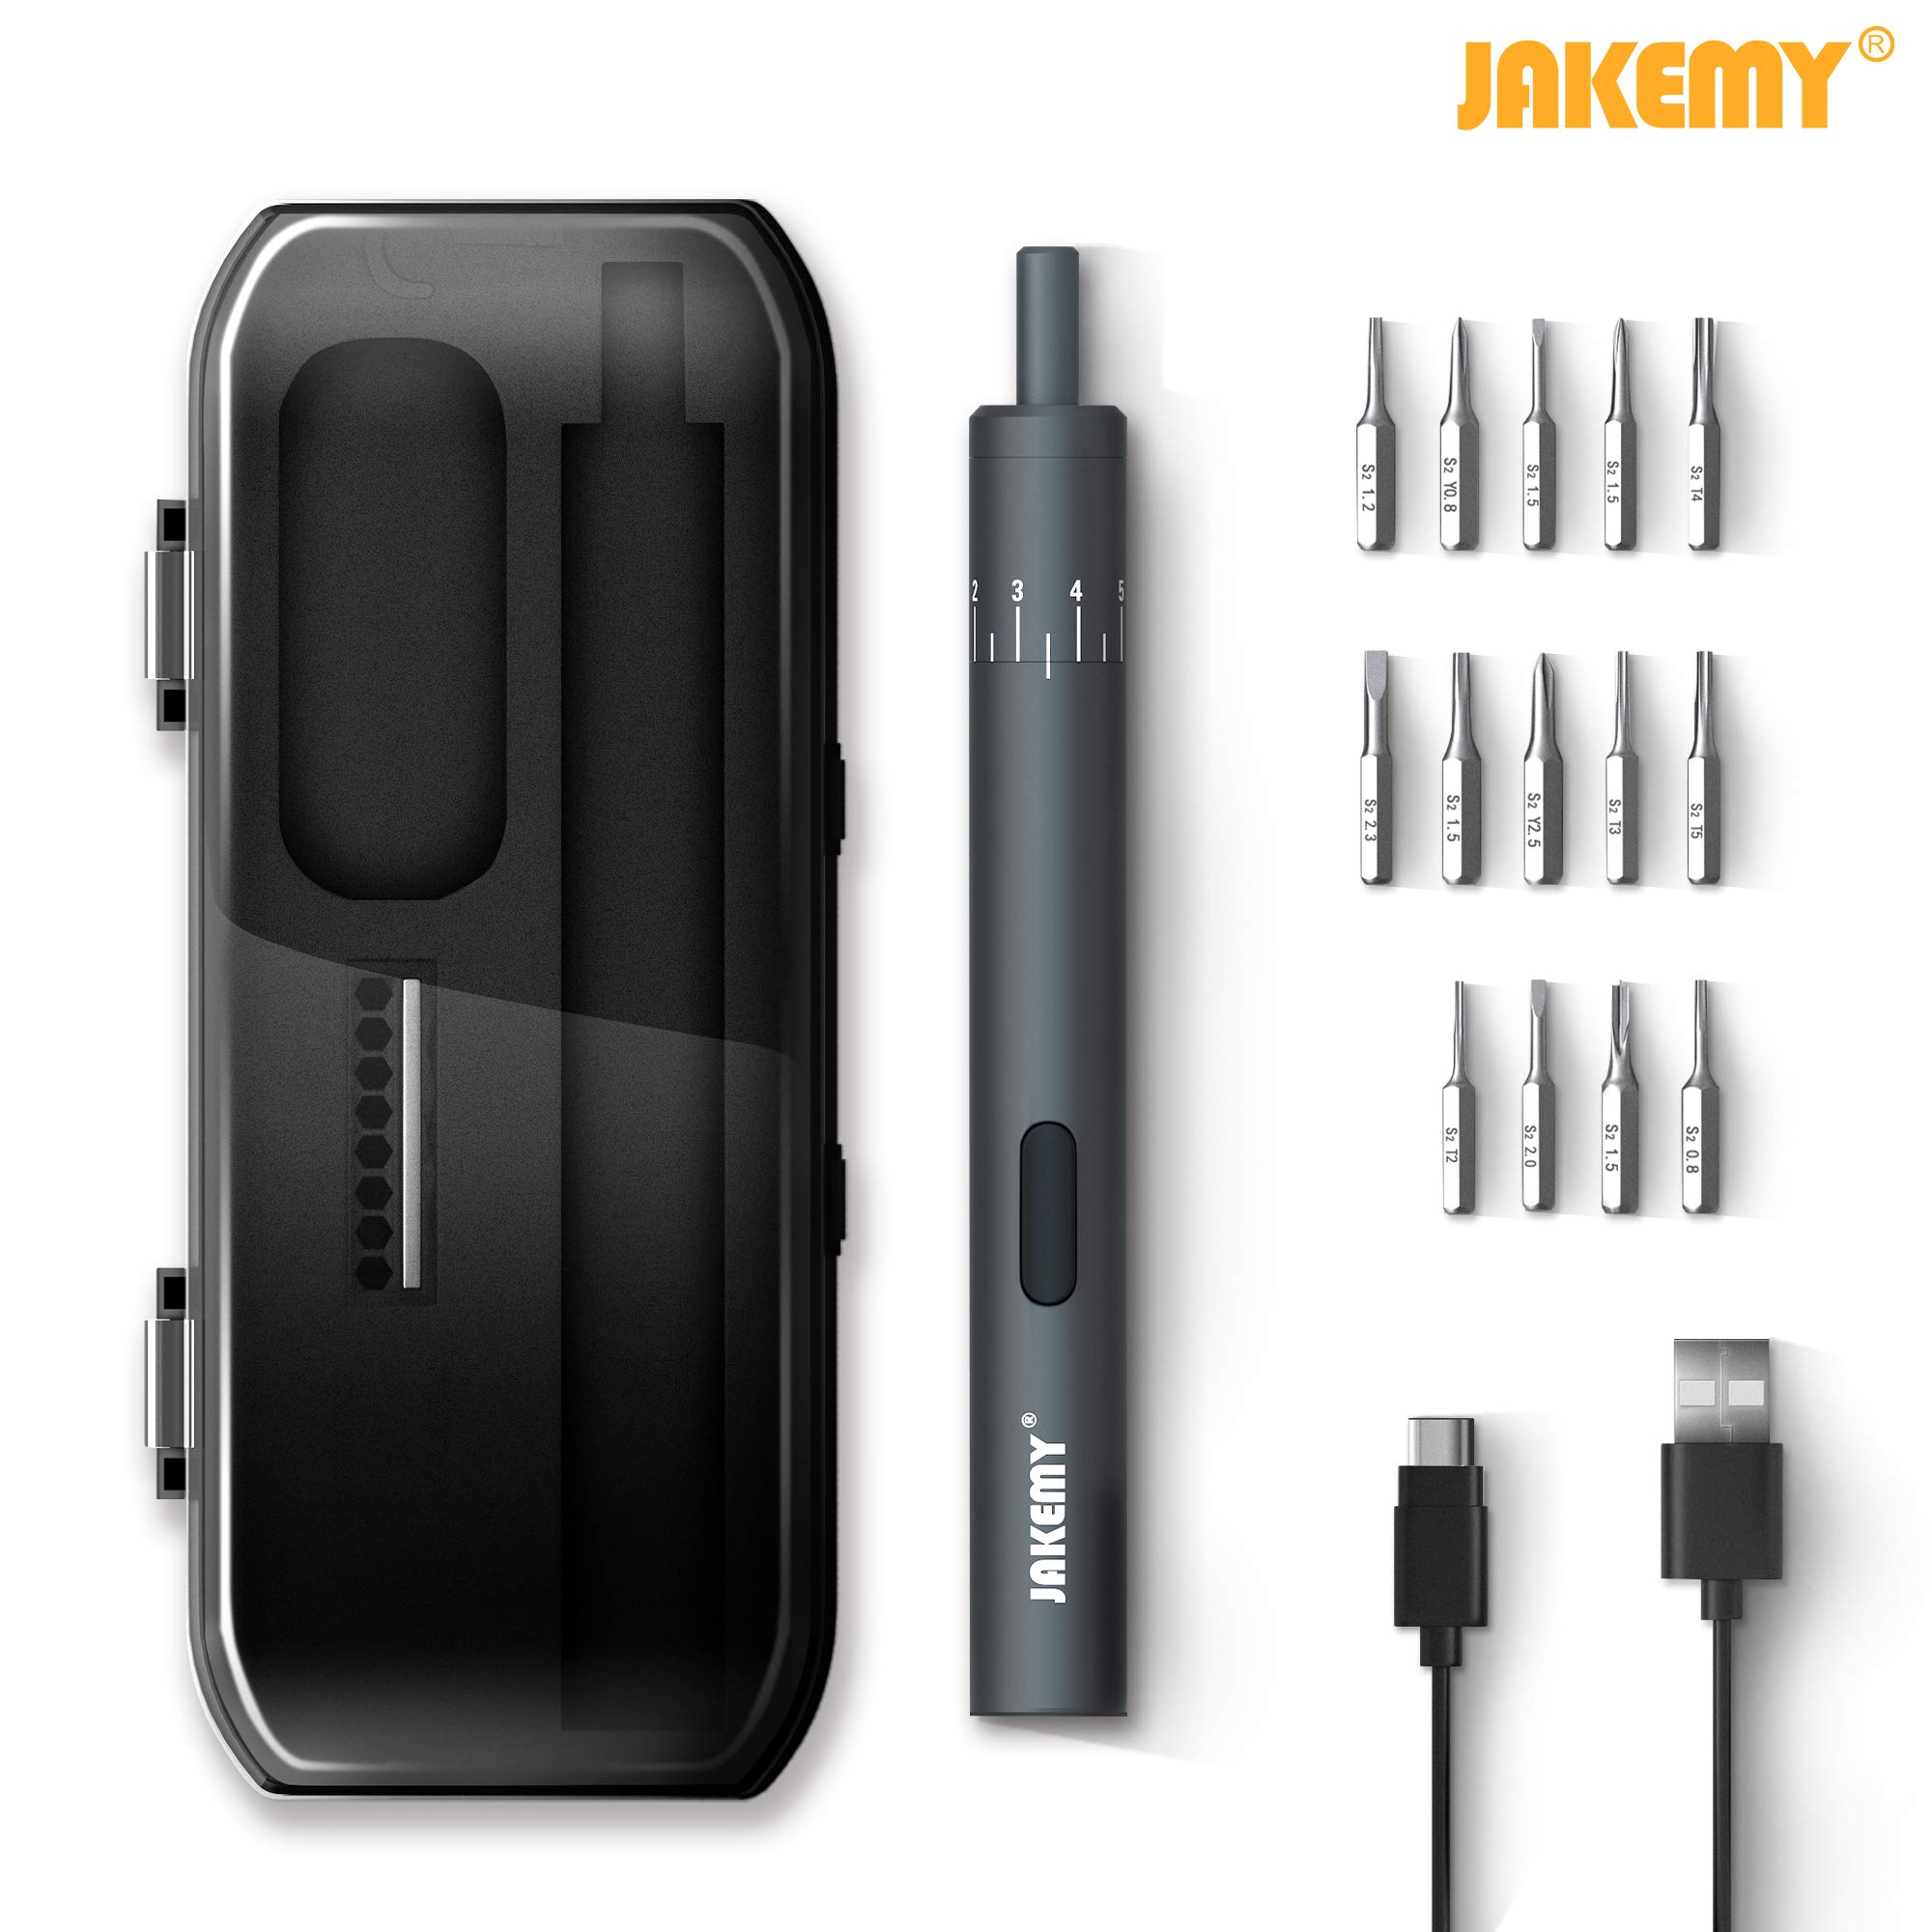 Jakemy 18 in 1 Electric Power Screwdriver Magnetic Precision Screwdriver Repair Tool Kit iPhone, Watch, Camera, Electric Device Repair